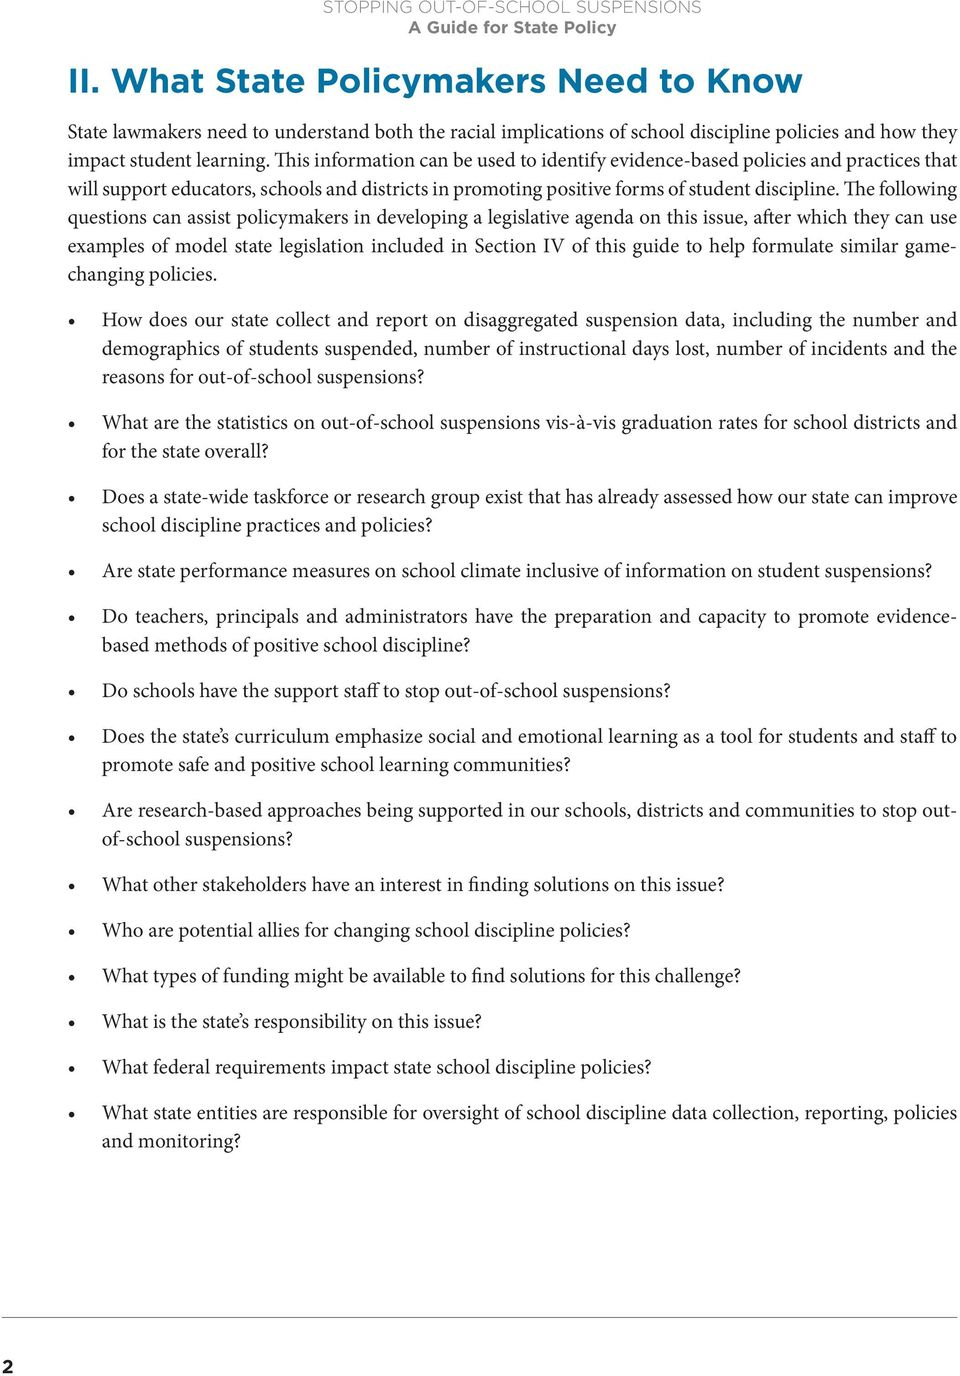 The following questions can assist policymakers in developing a legislative agenda on this issue, after which they can use examples of model state legislation included in Section IV of this guide to